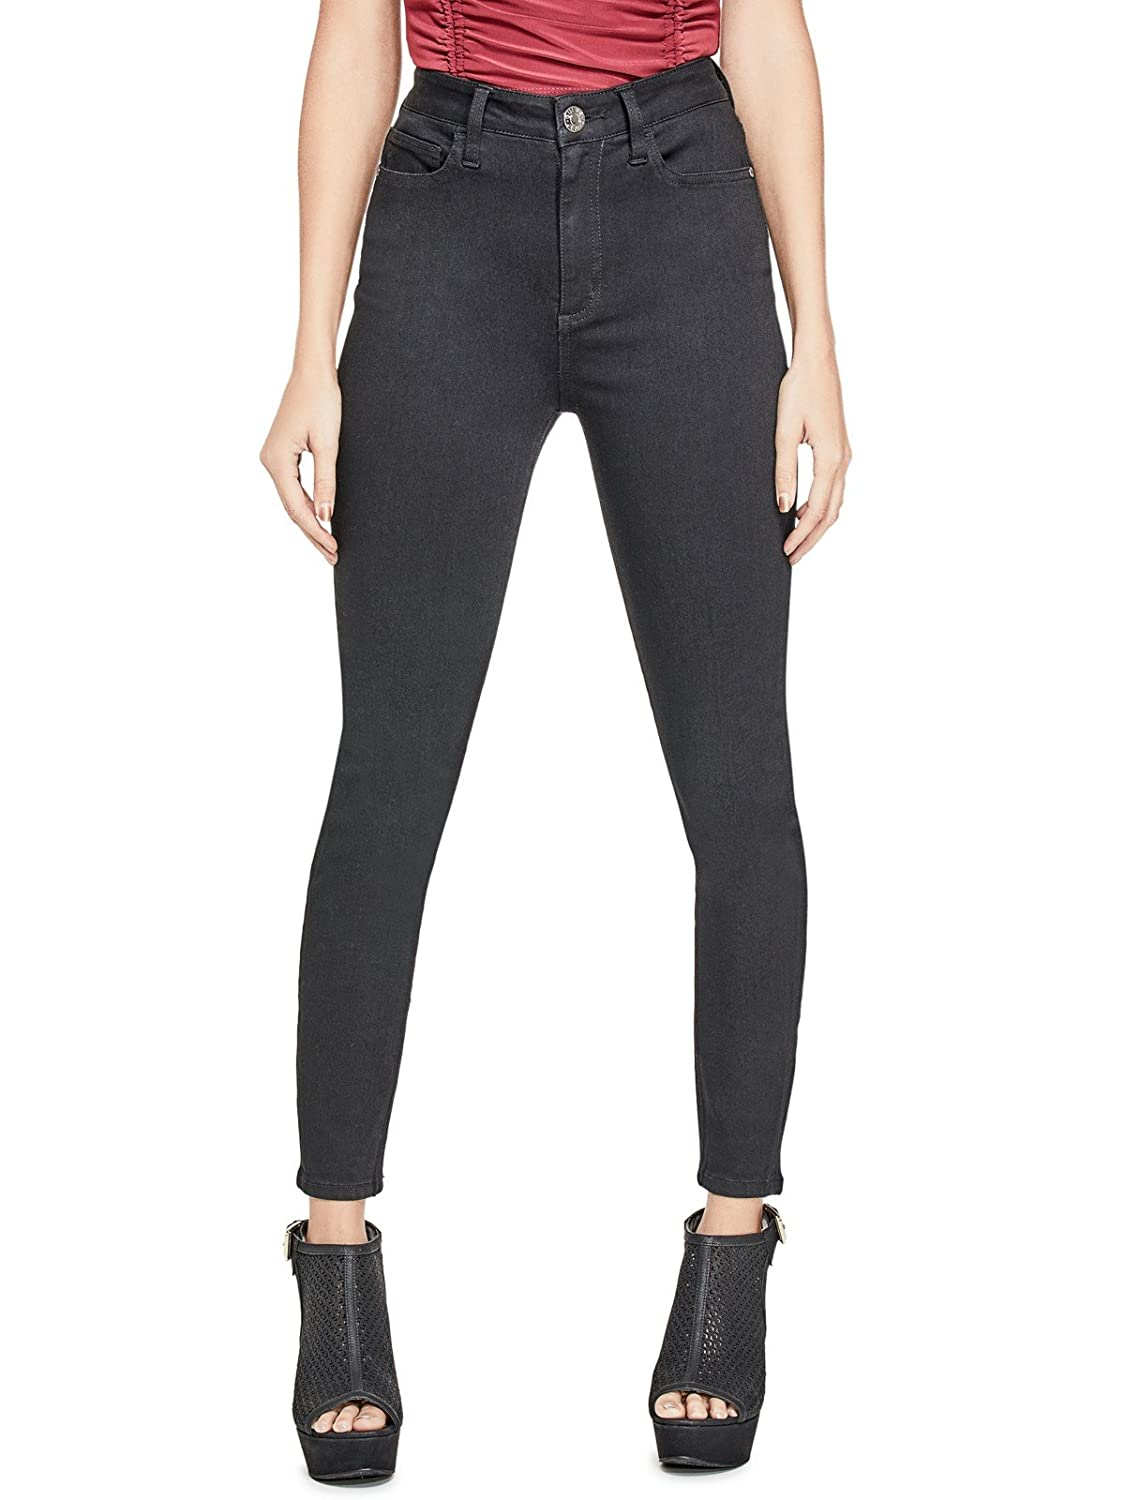 Guess Factory Women's Simmone Super High-Waist Skinny Jeans GuessFactory